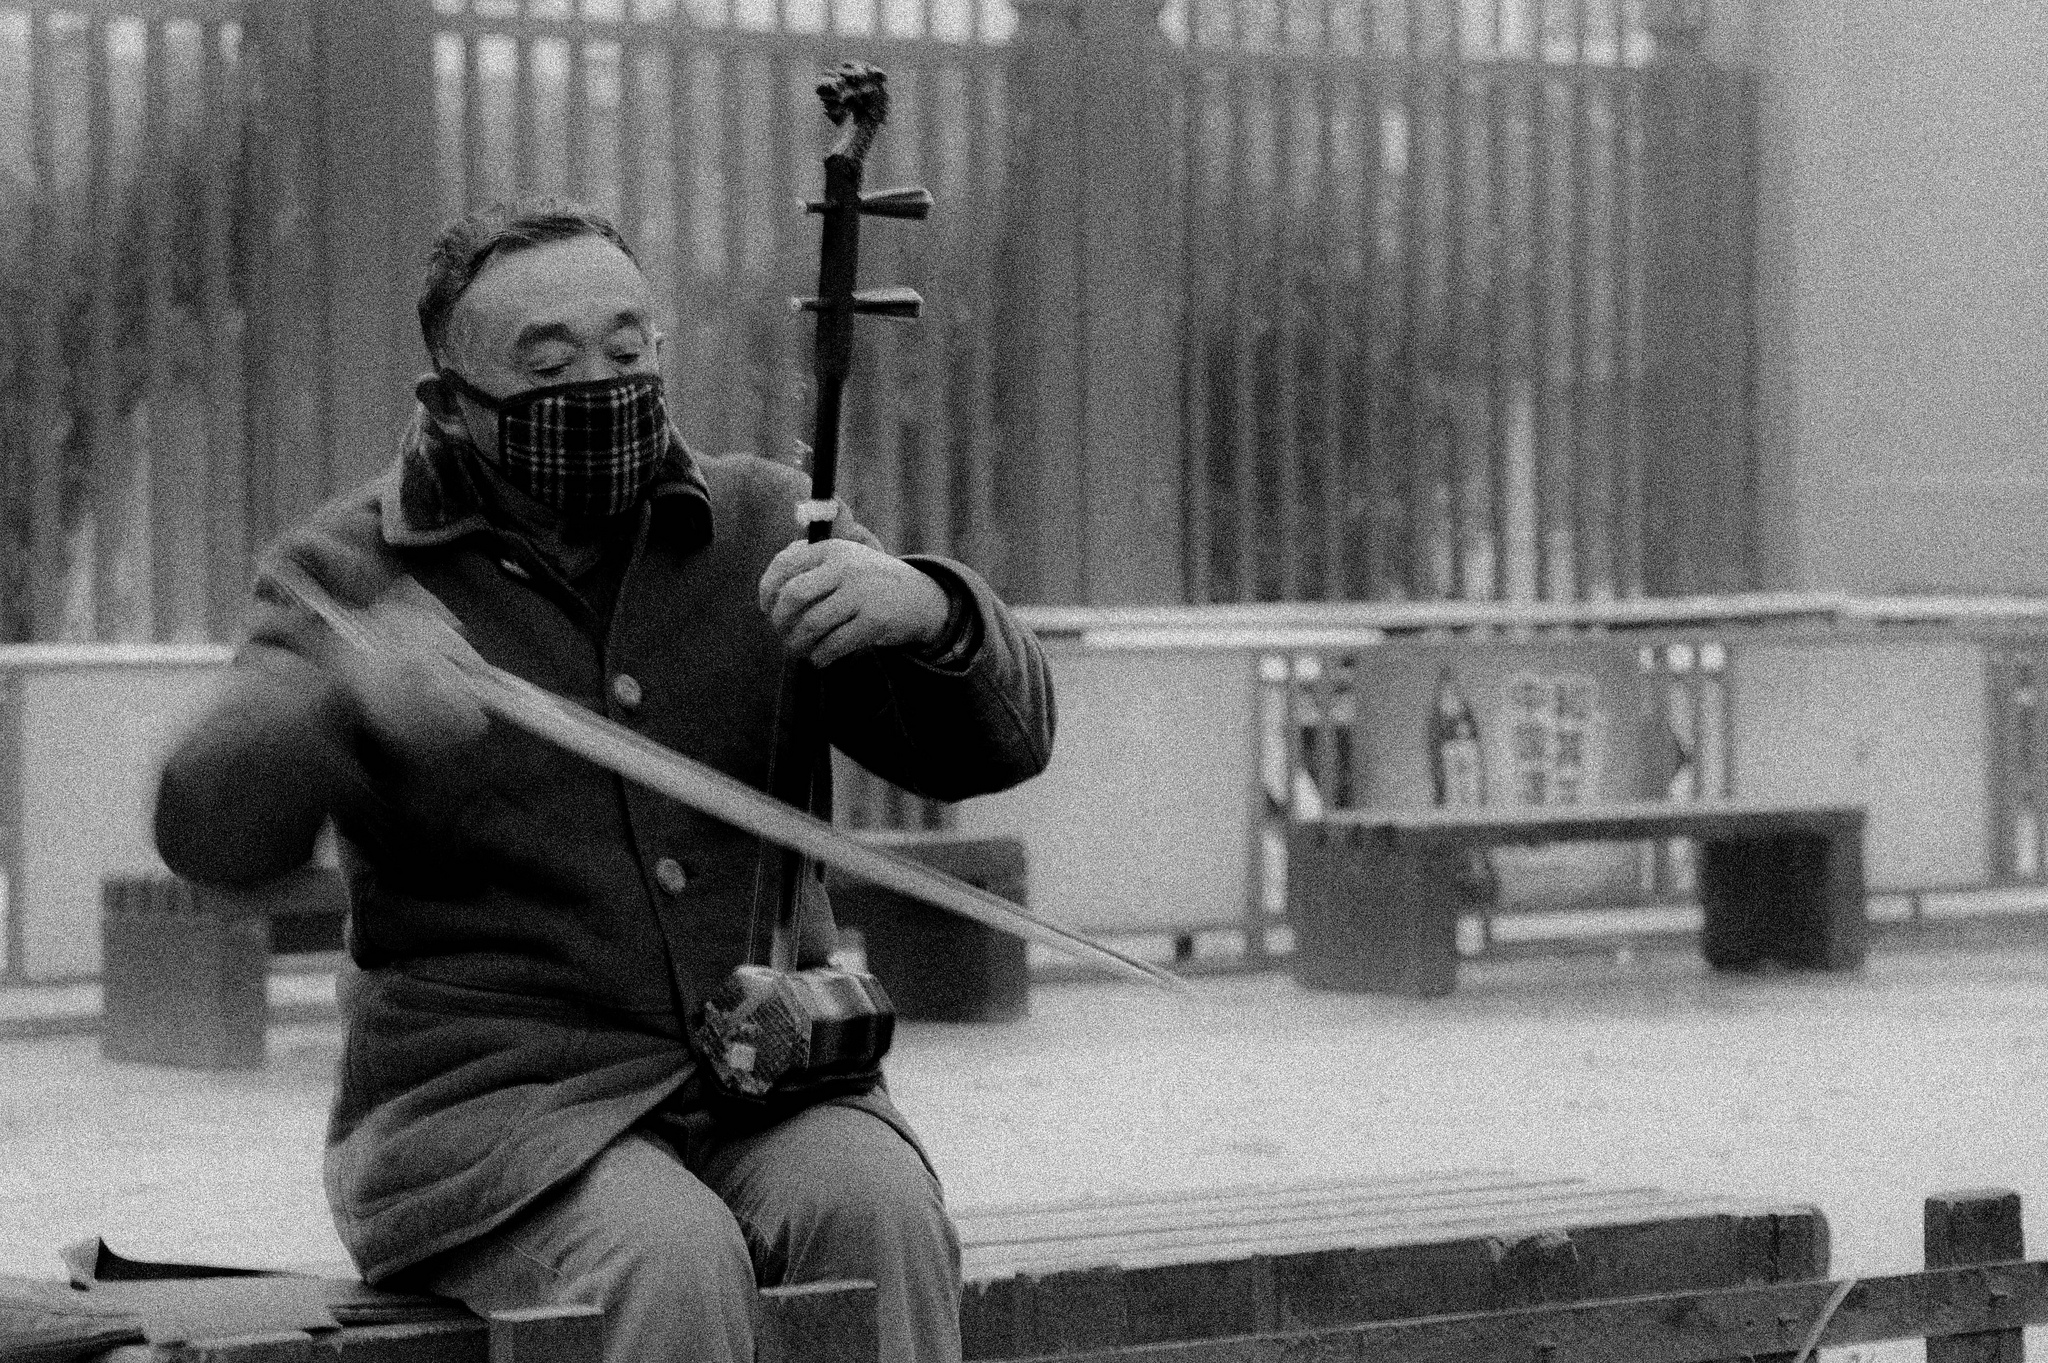 Musician playing in empty Beijing square, mouth and nose covered to protect against the pollution